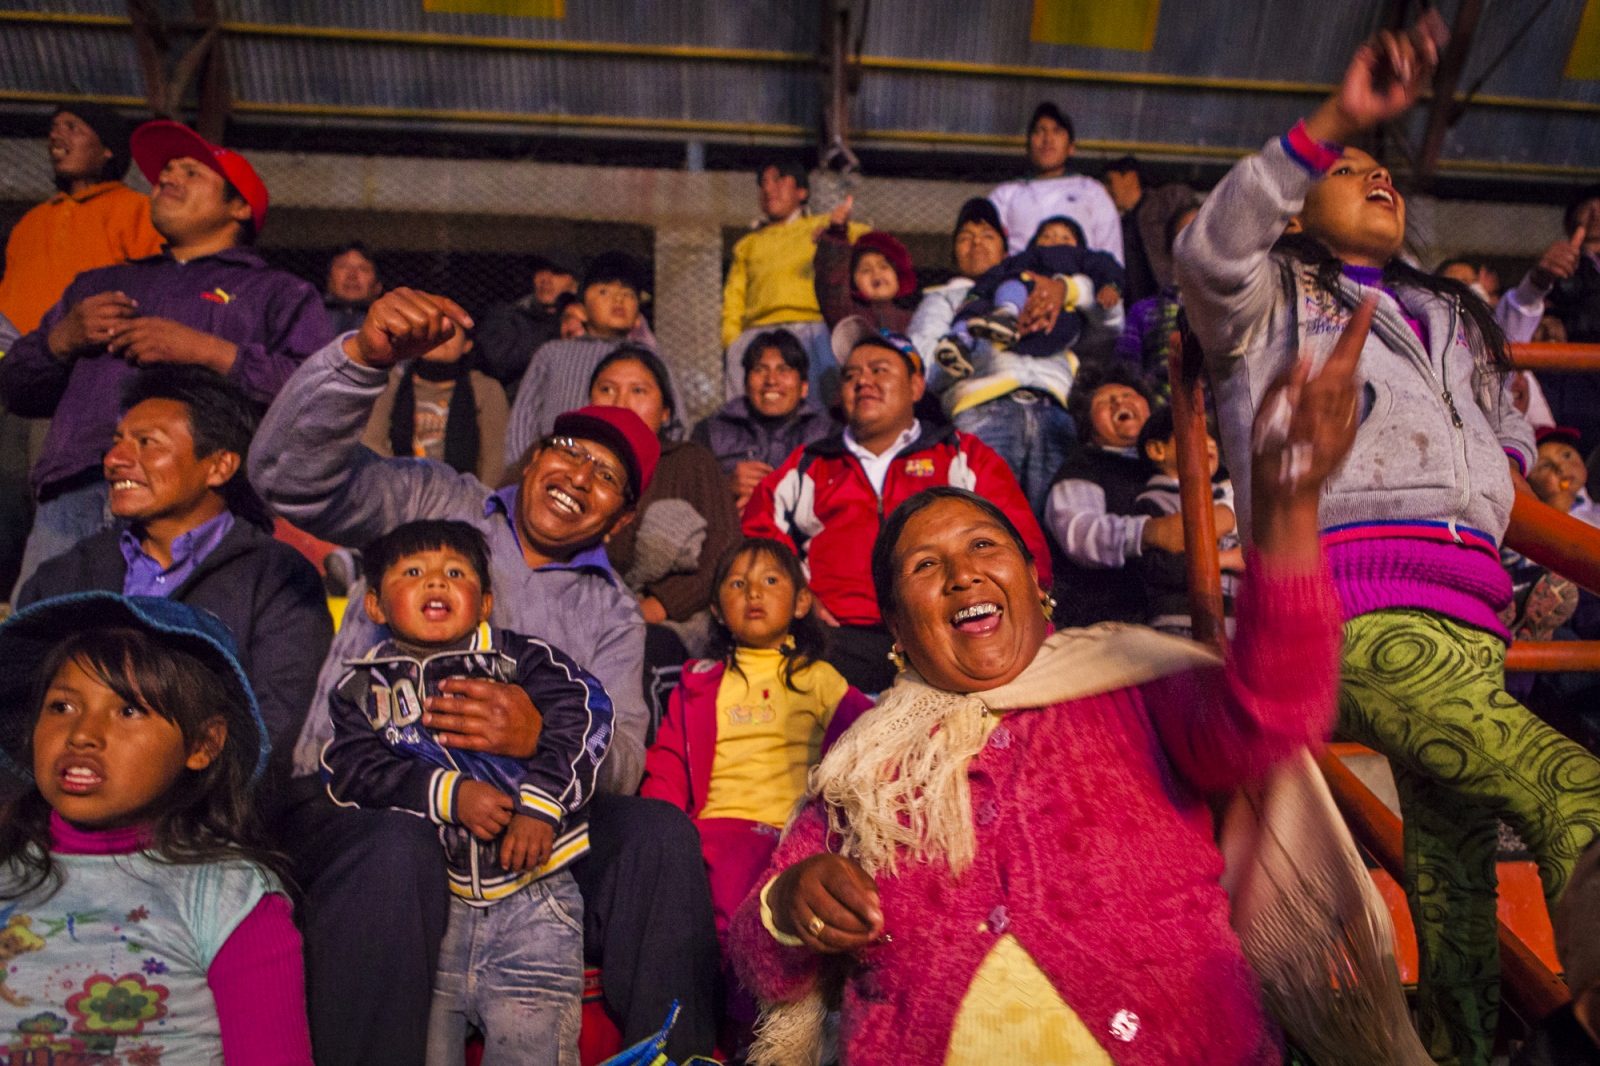 The Bolivian public cheers the cholitas during a fight in the 12th October Complex in the city of El Alto. To many people in town going to see the fights of the Cholitas is their favourite Sunday past time.